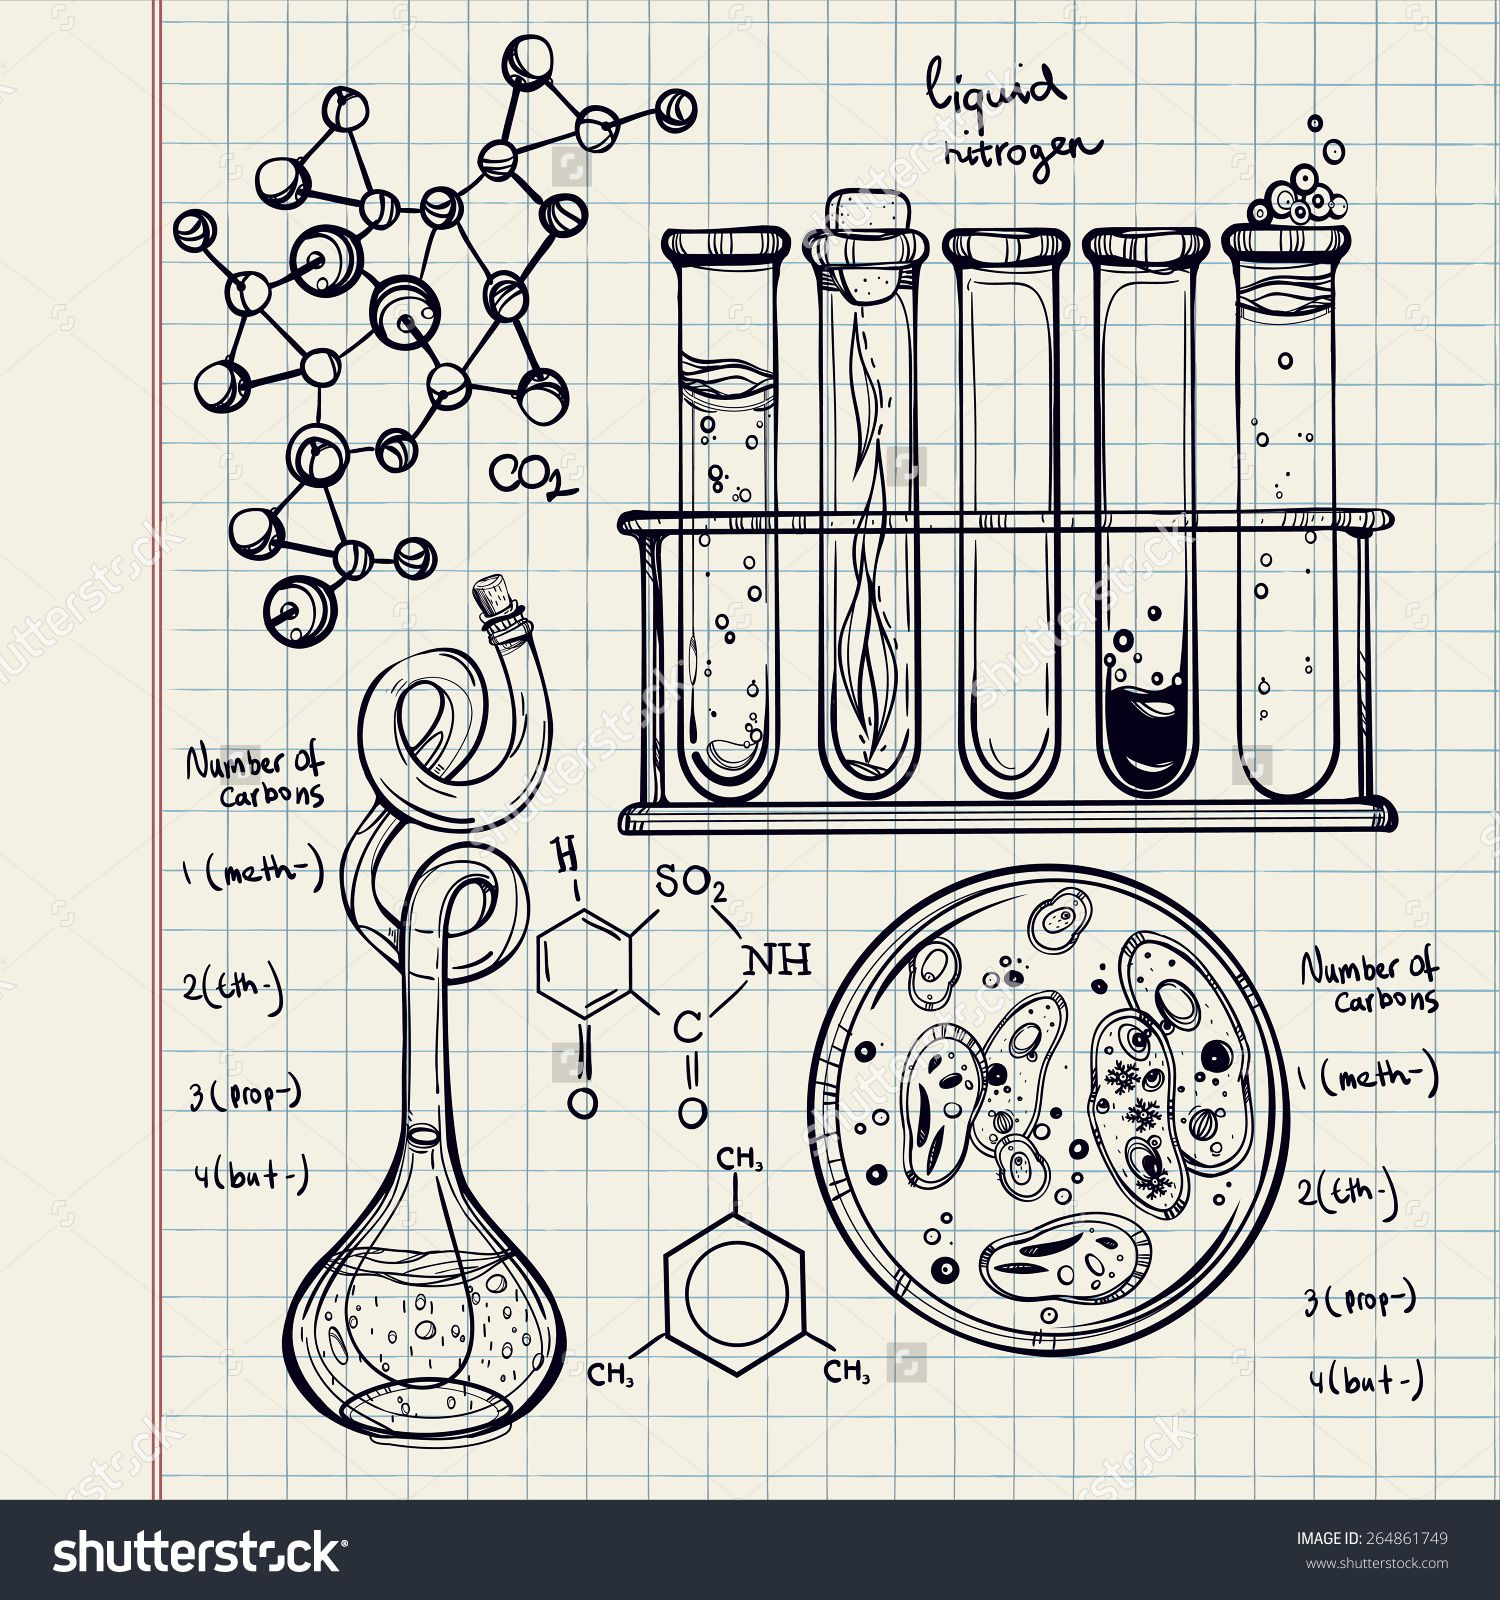 Hand Drawn Science Beautiful Laboratory Icons Sketch Vector Illustrationck To School